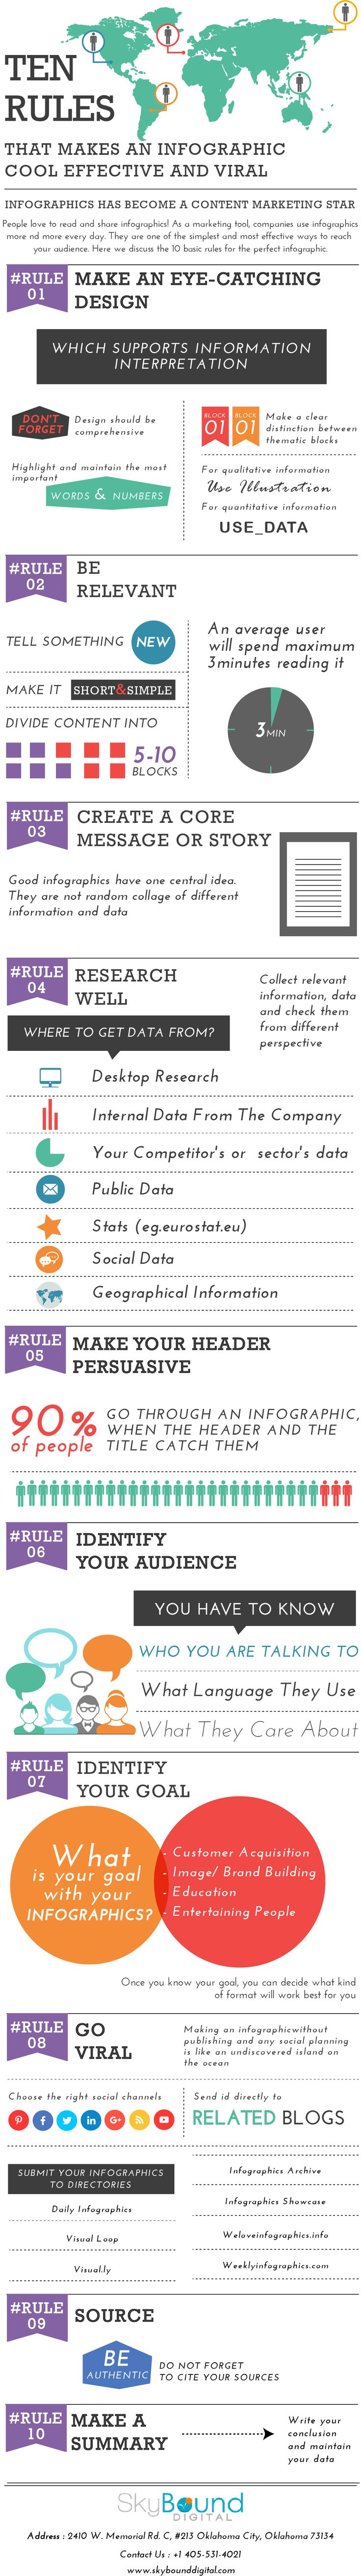 Infographics is an important tool from the content marketing aspect. Infographic has become very popular as people generally enjoy, read, and share new infographics.  But every Infographic do not get huge popularity like others. Skybound Digital, a Digital Marketing Company In Oklahoma discusses about the ten rules that makes an infographic cool effective and viral. for more visit https://www.skybounddigital.com/